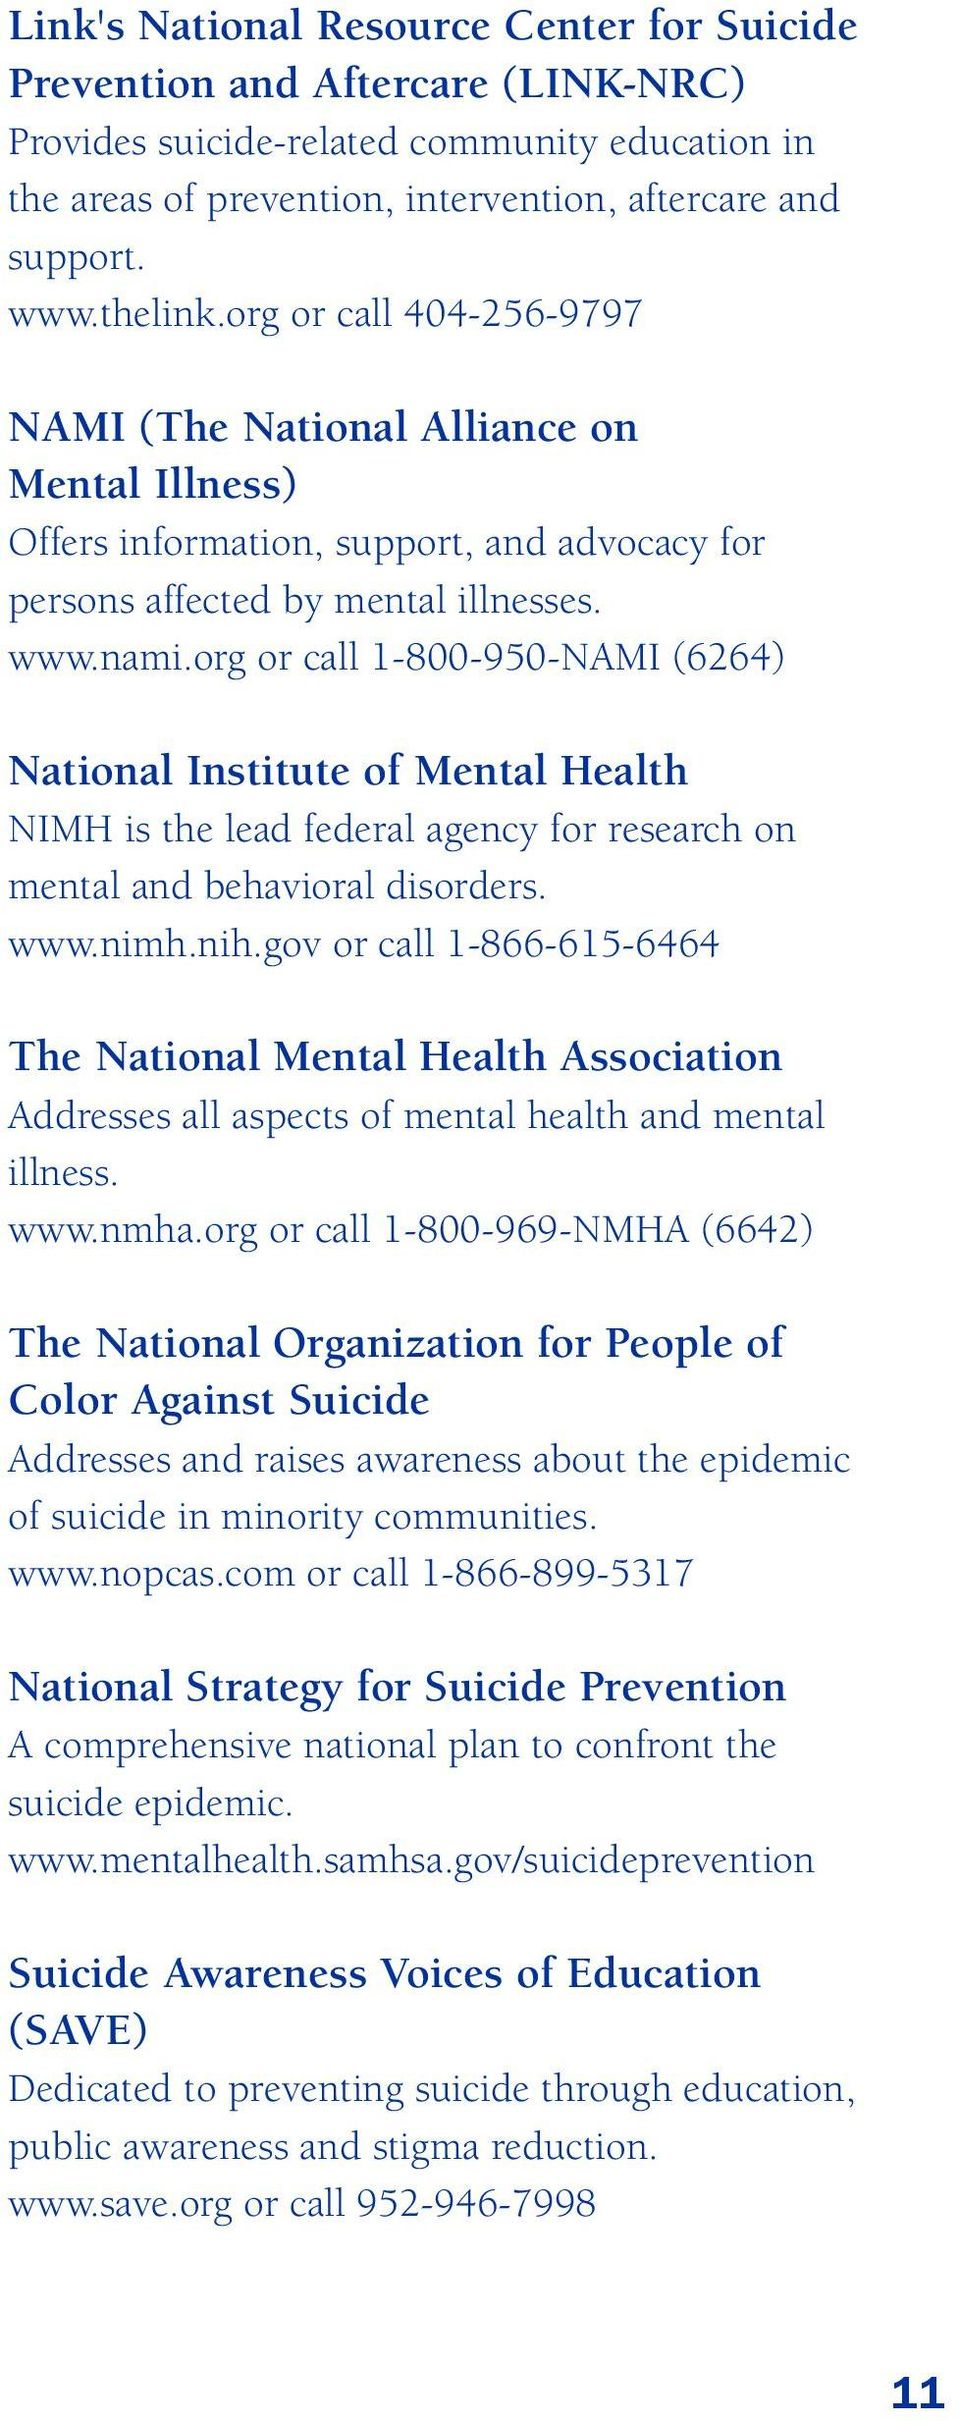 org or call 1-800-950-NAMI (6264) National Institute of Mental Health NIMH is the lead federal agency for research on mental and behavioral disorders. www.nimh.nih.